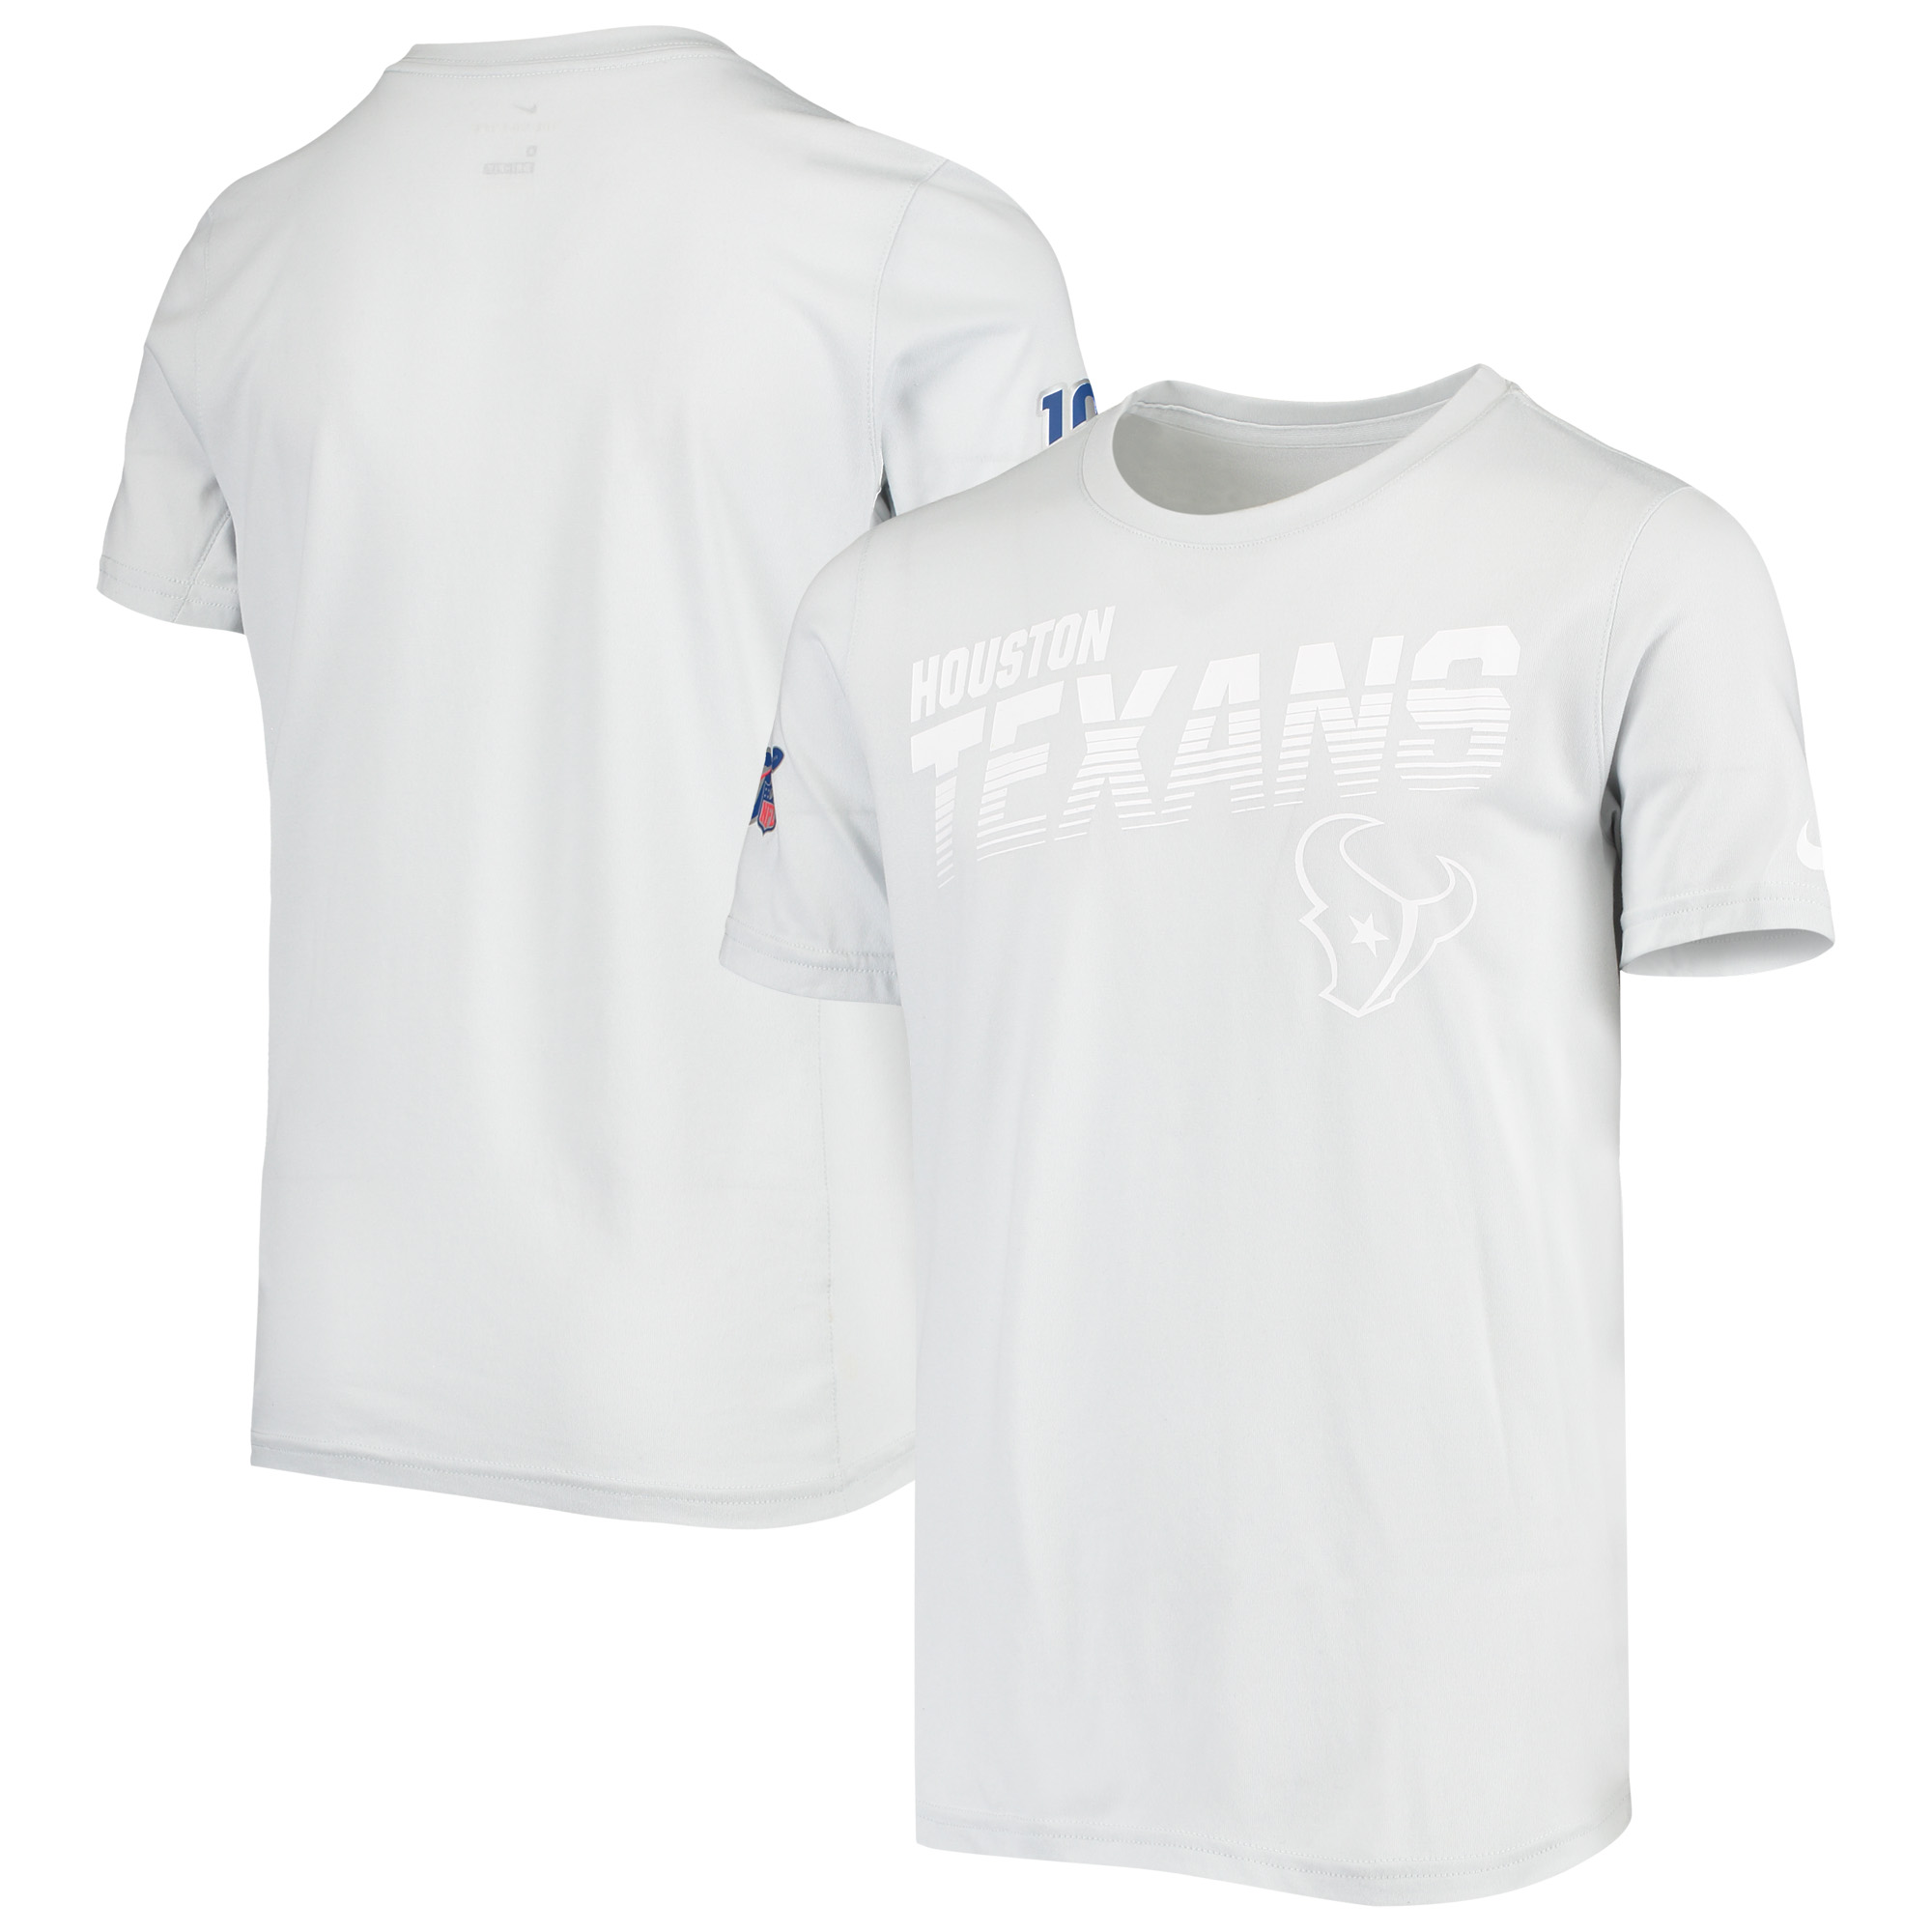 houston texans white shirt